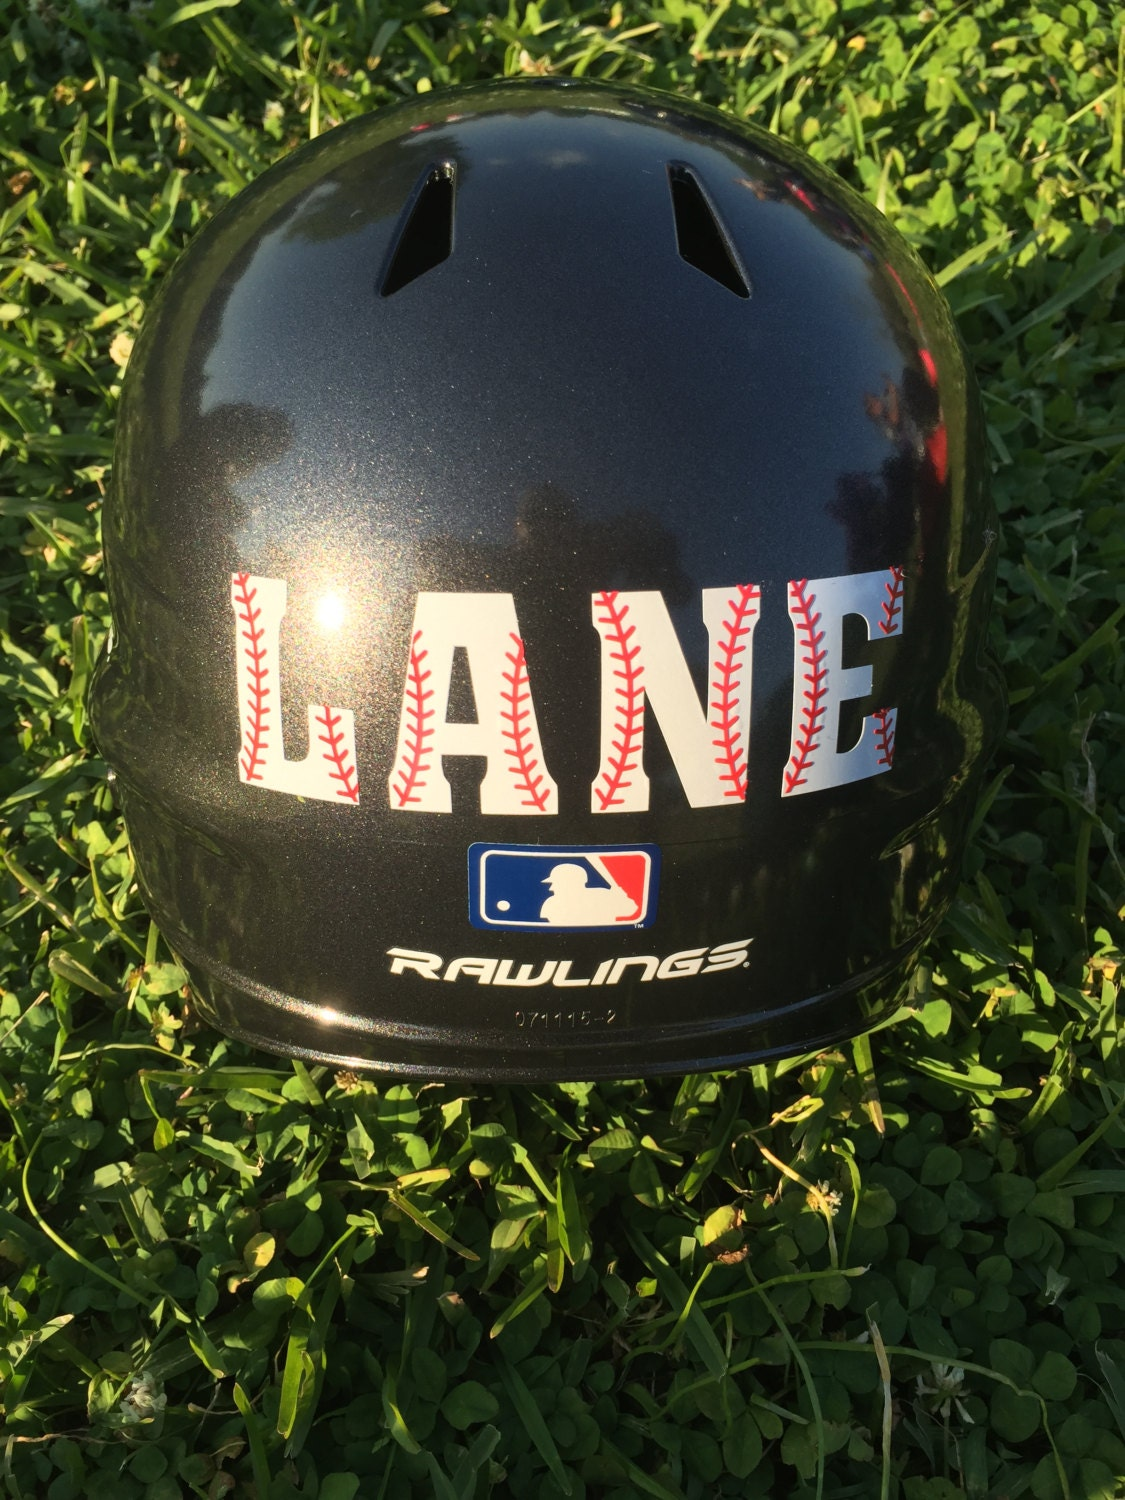 Baseball Helmet Decal Personalized Baseball Helmet Decal - Custom vinyl baseball decals